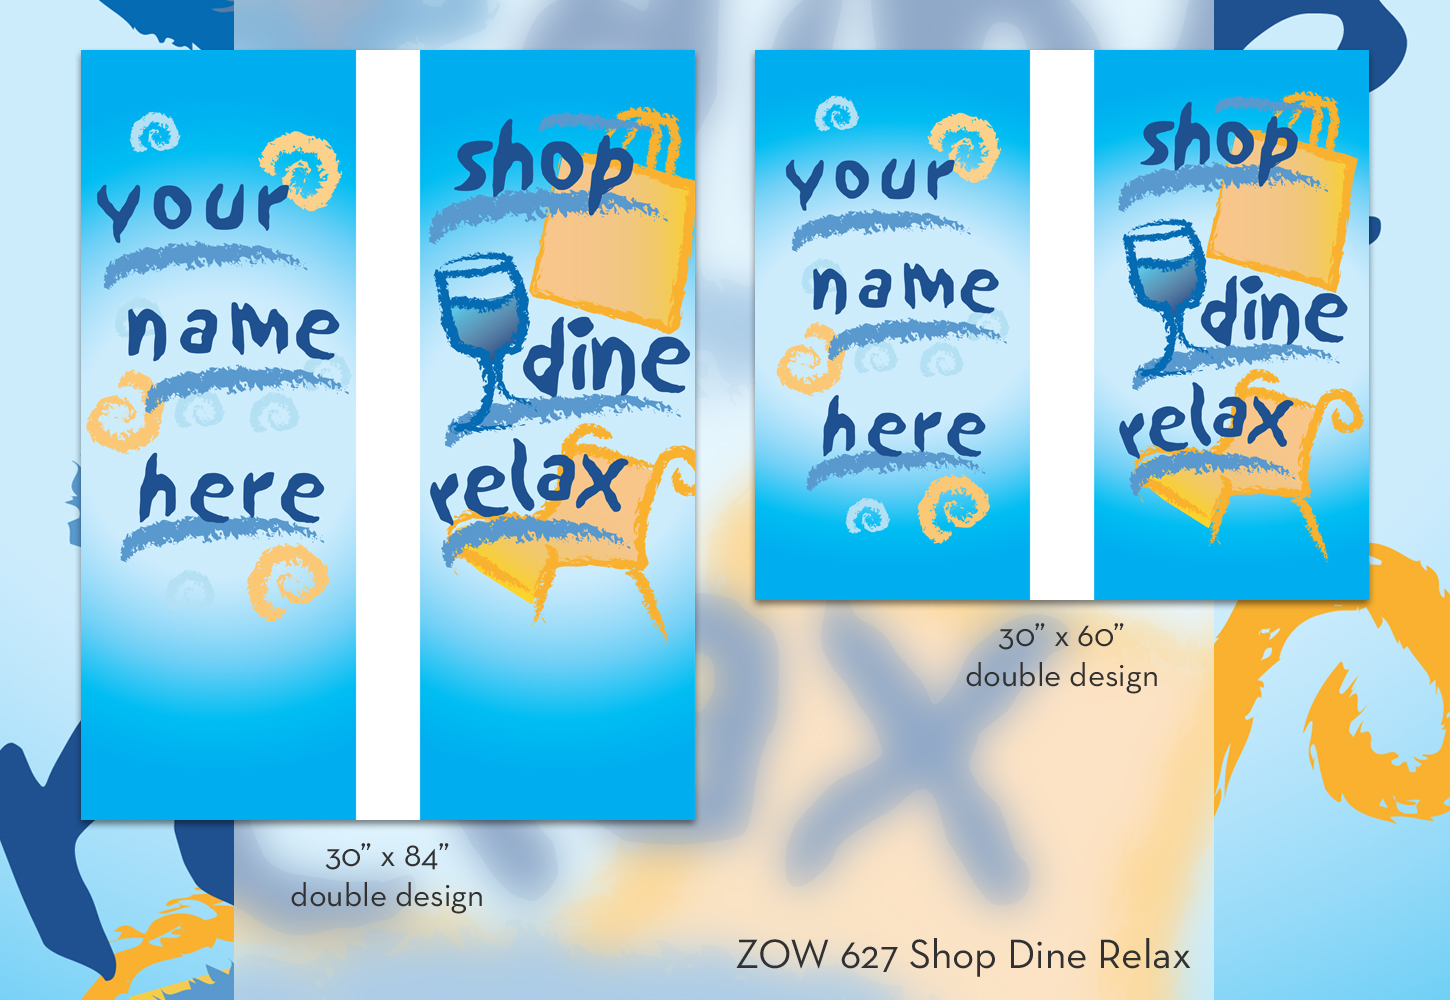 ZOW 627 Shop Dine Relax